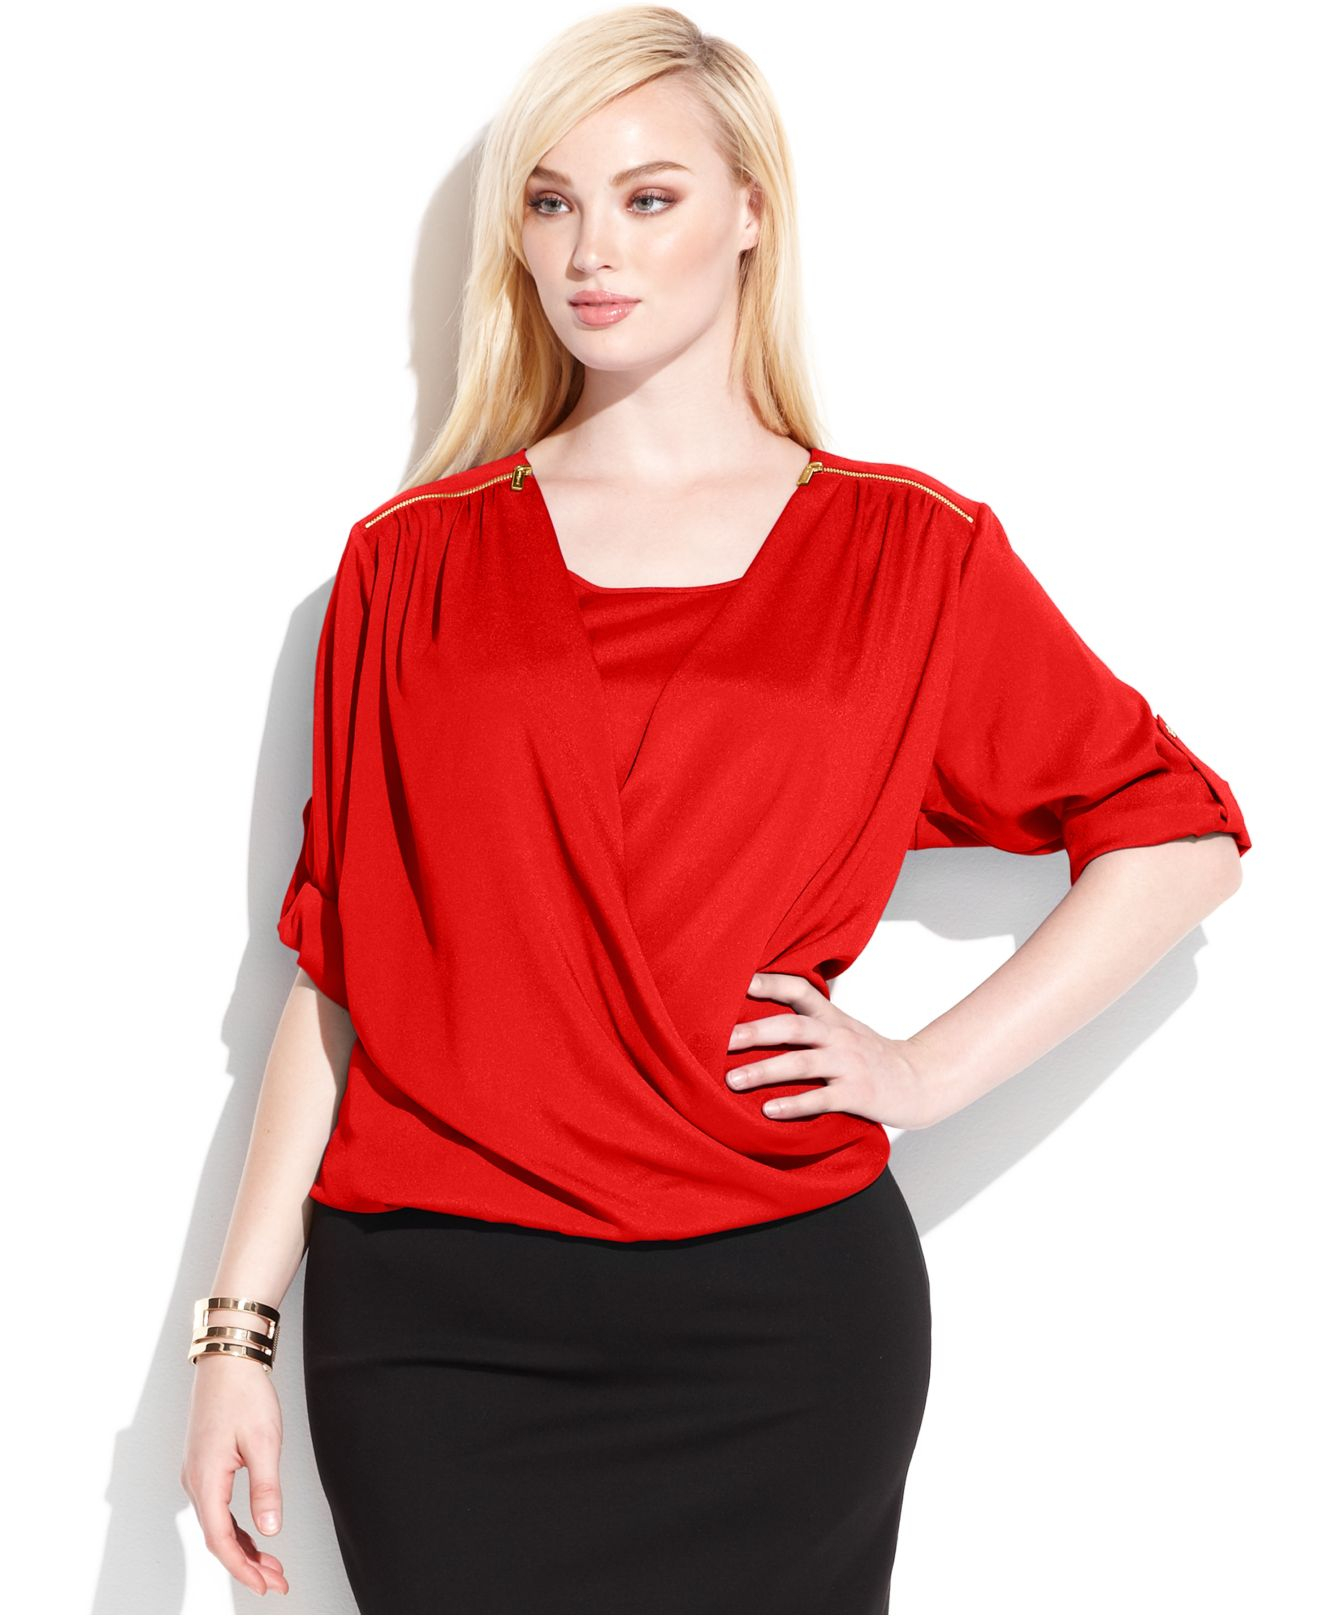 Red Chiffon Blouses. Showing 40 of results that match your query. Search Product Result. Product - Women Round Neck Chiffon Comfort Tank Top Blouse Red. Product Image. Price $ Product Title. Women Round Neck Chiffon Comfort Tank Top Blouse Red. Add To Cart. There is a problem adding to cart. Please try again.